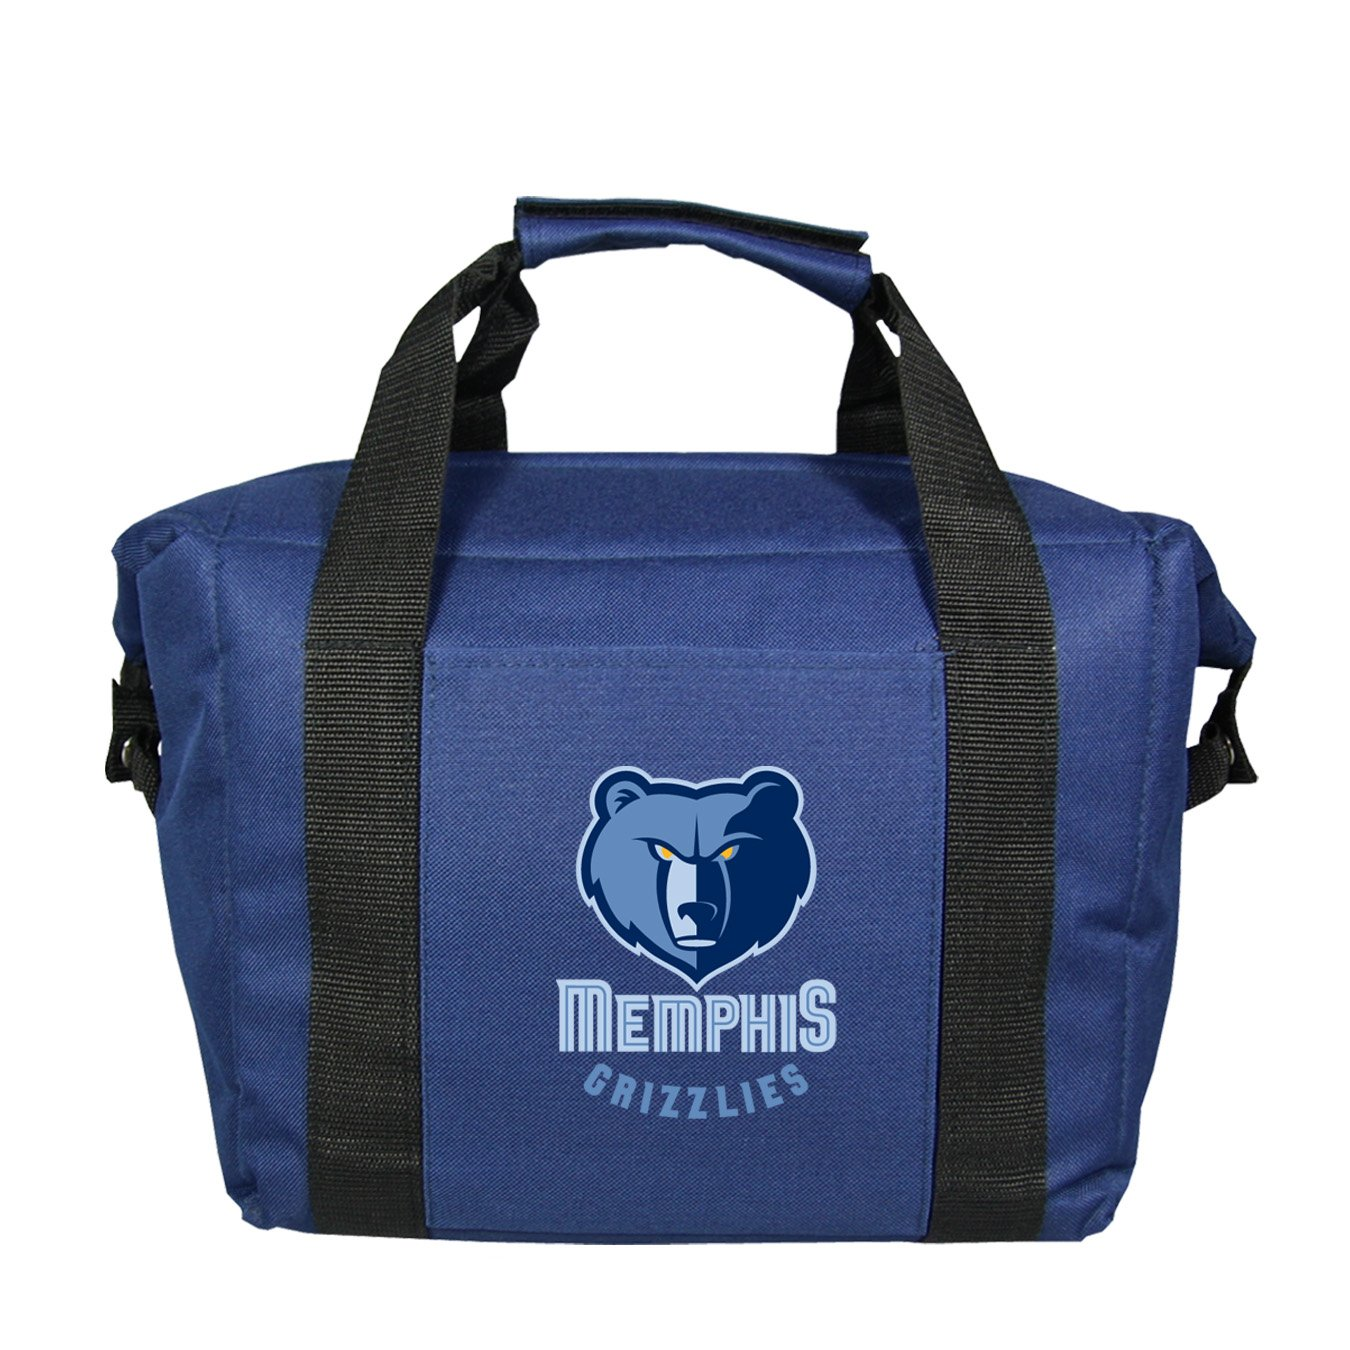 NBA Memphis Grizzlies Soft Sided Cooler Bag, Holds 12 Cans